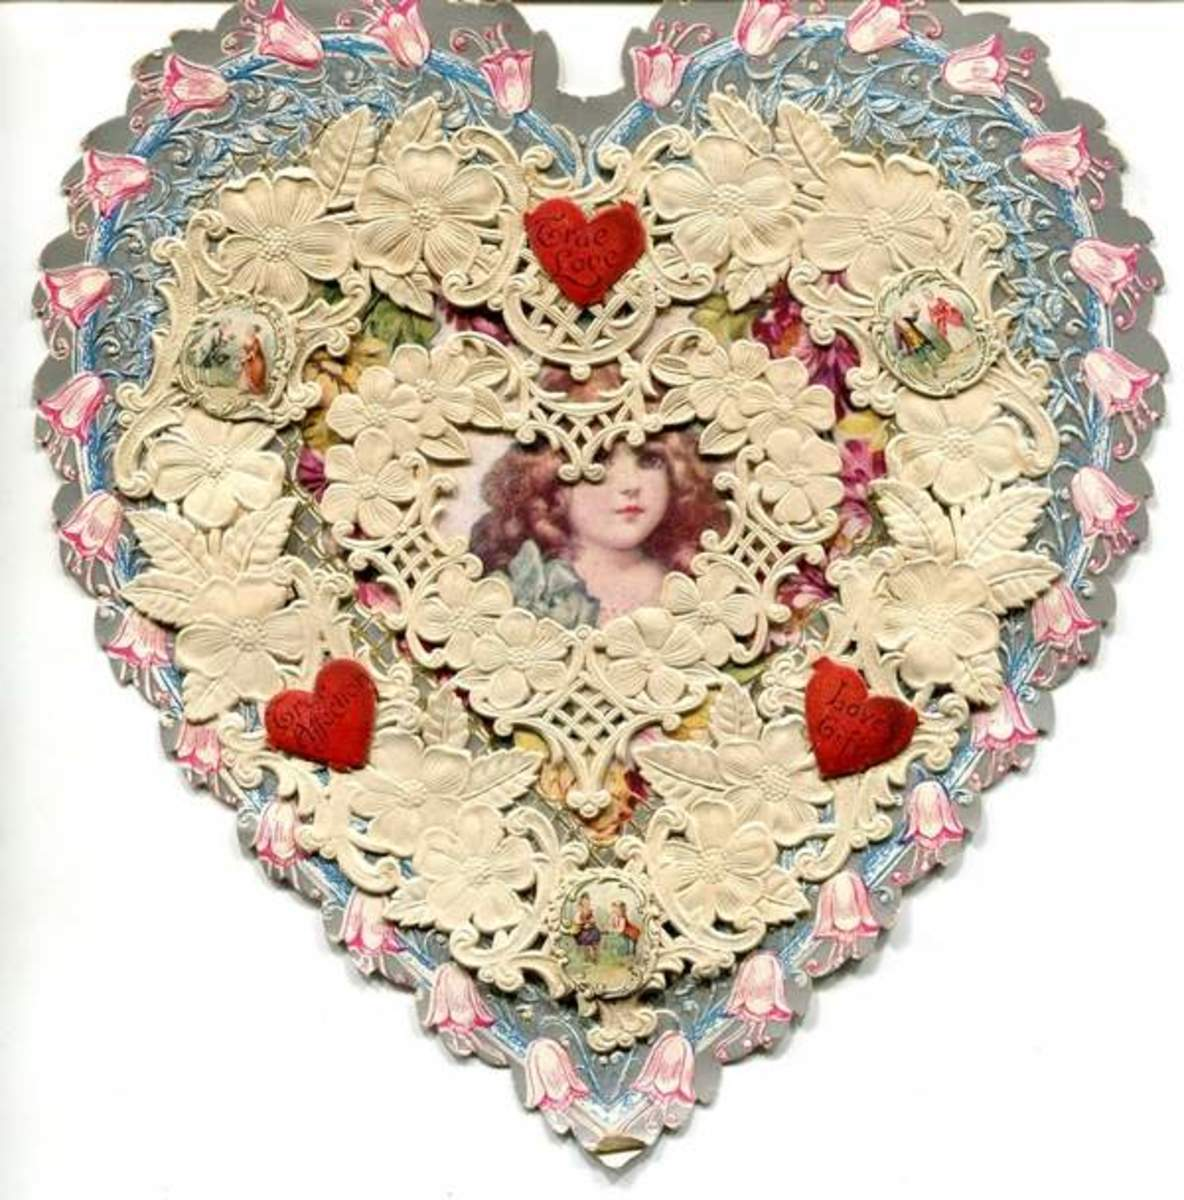 Howland's Hand-made Lace Valentine